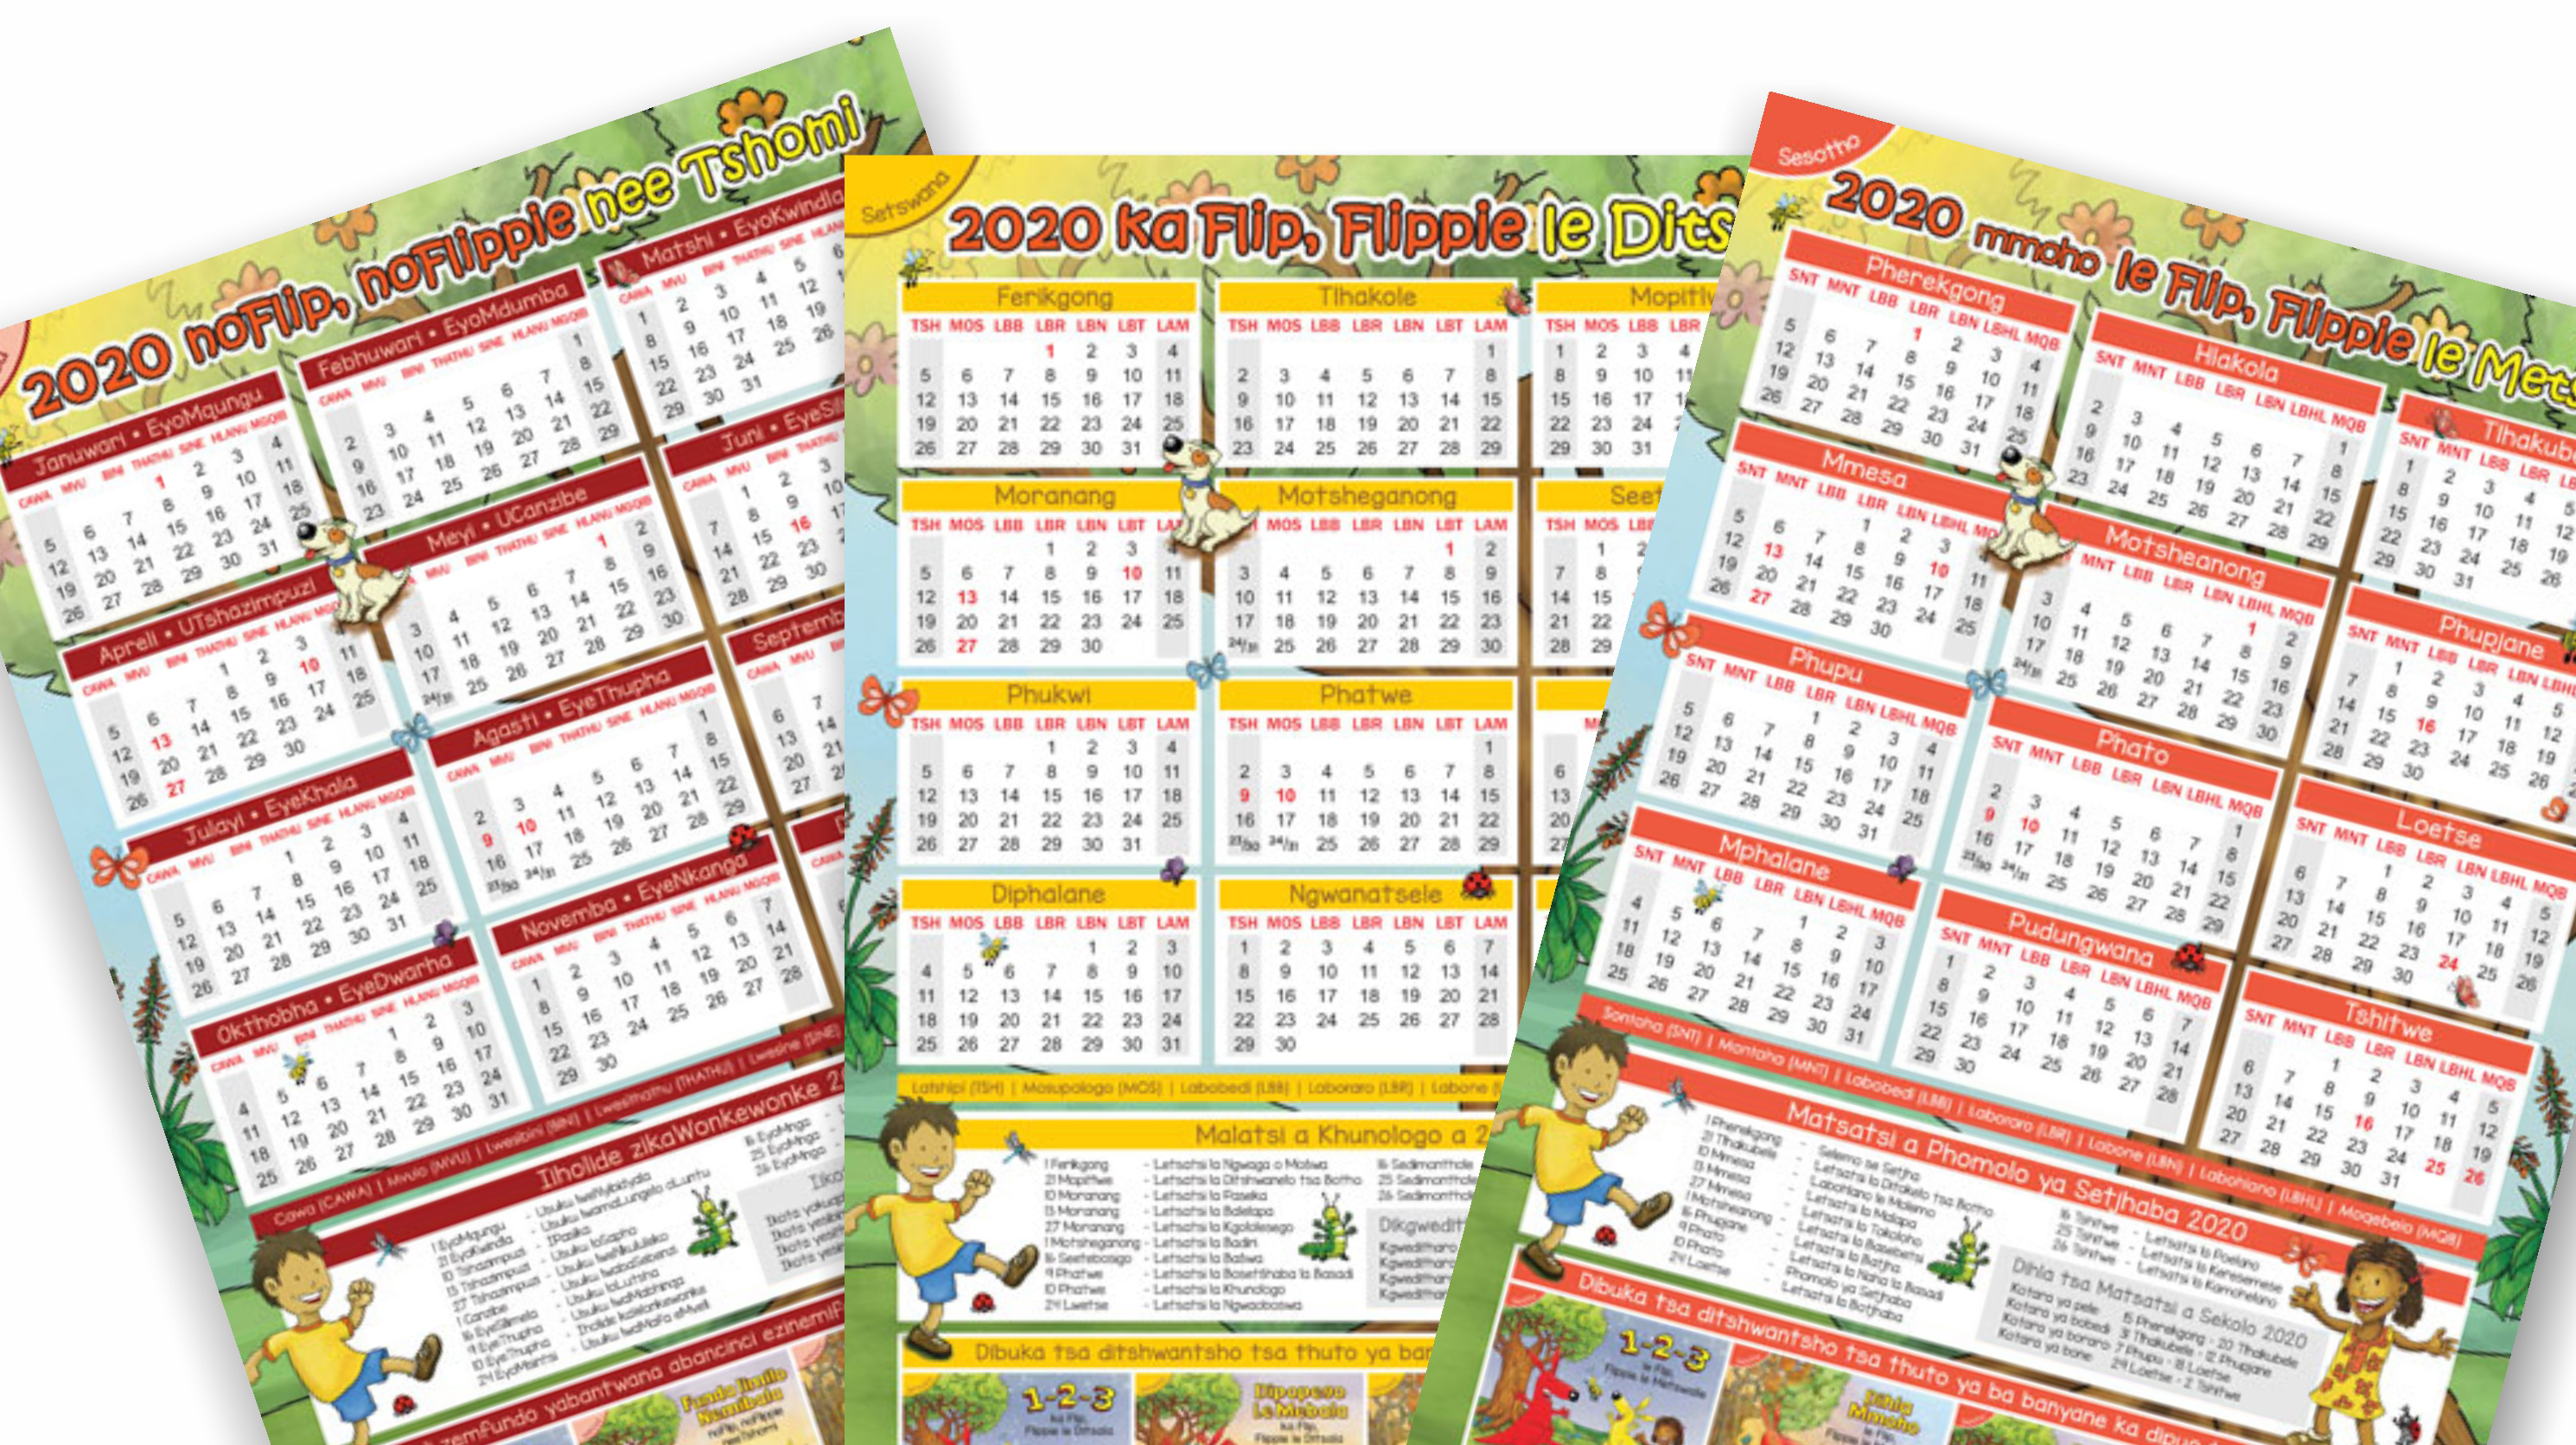 2020 Calendars in South African Languages are now available for free downloading on our website.